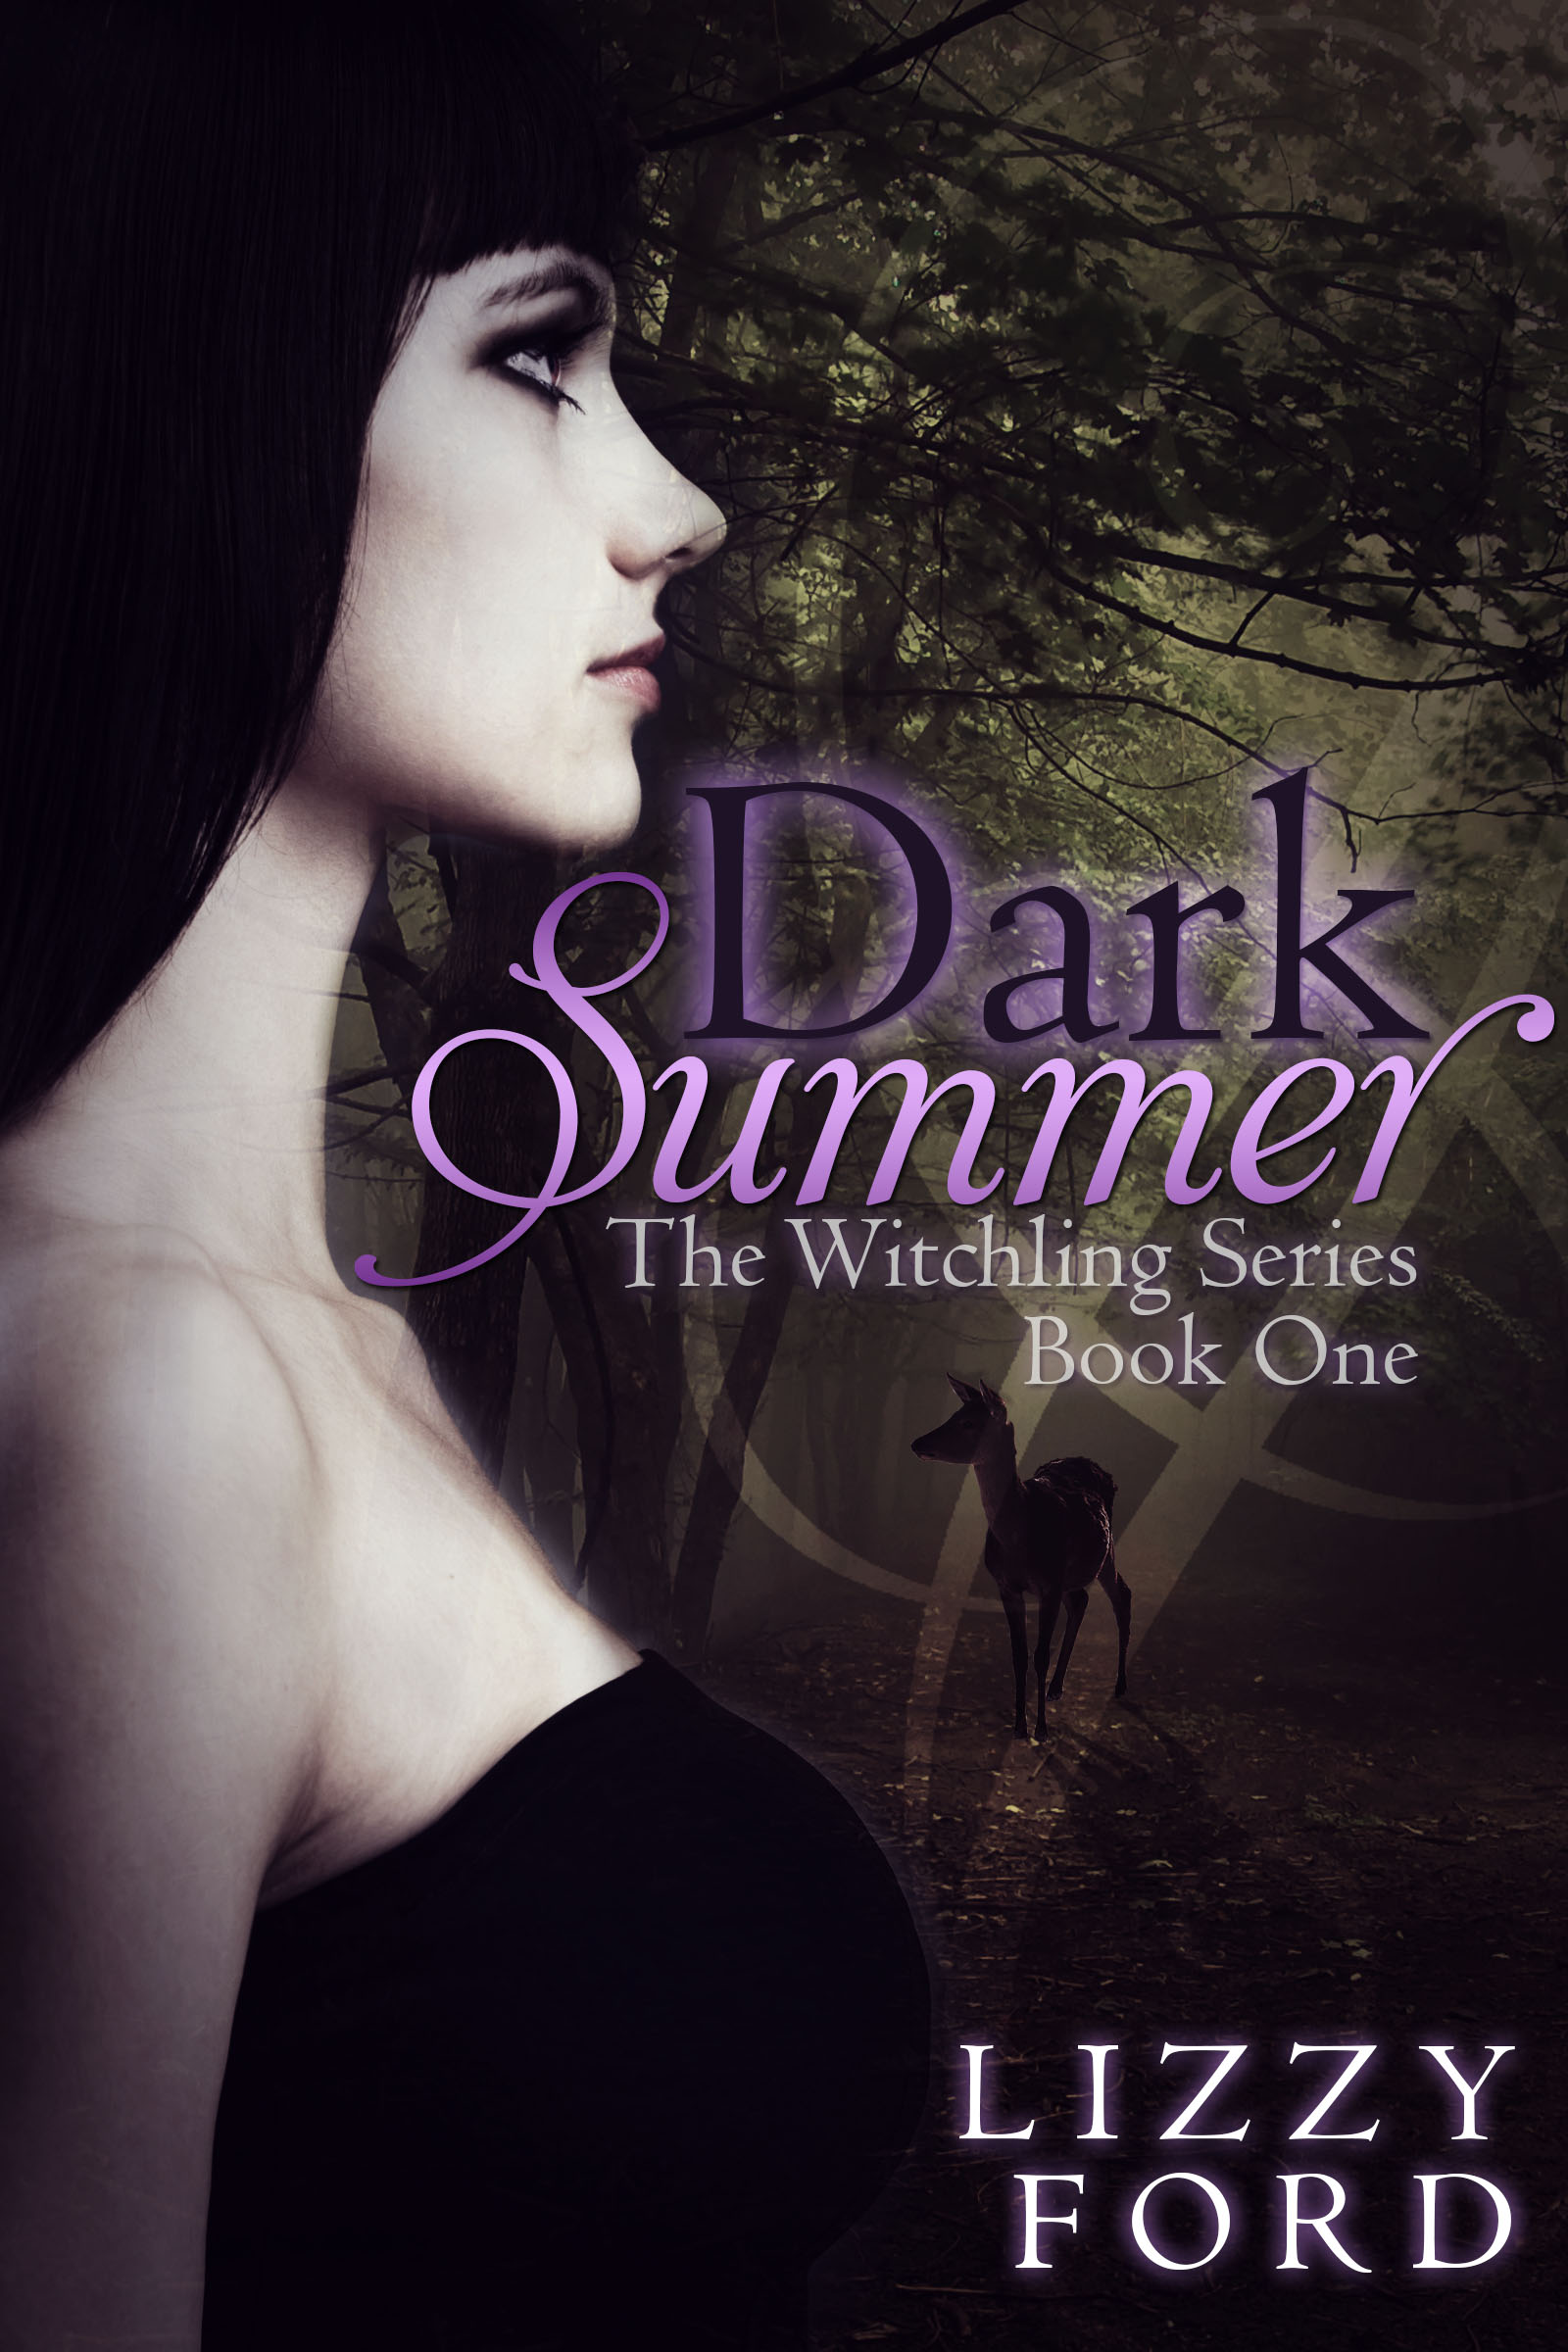 summer dating in the dark Become a patron of darkcookie today: read 24 posts by darkcookie and get access to exclusive content and experiences on the world's largest membership platform for artists and creators.